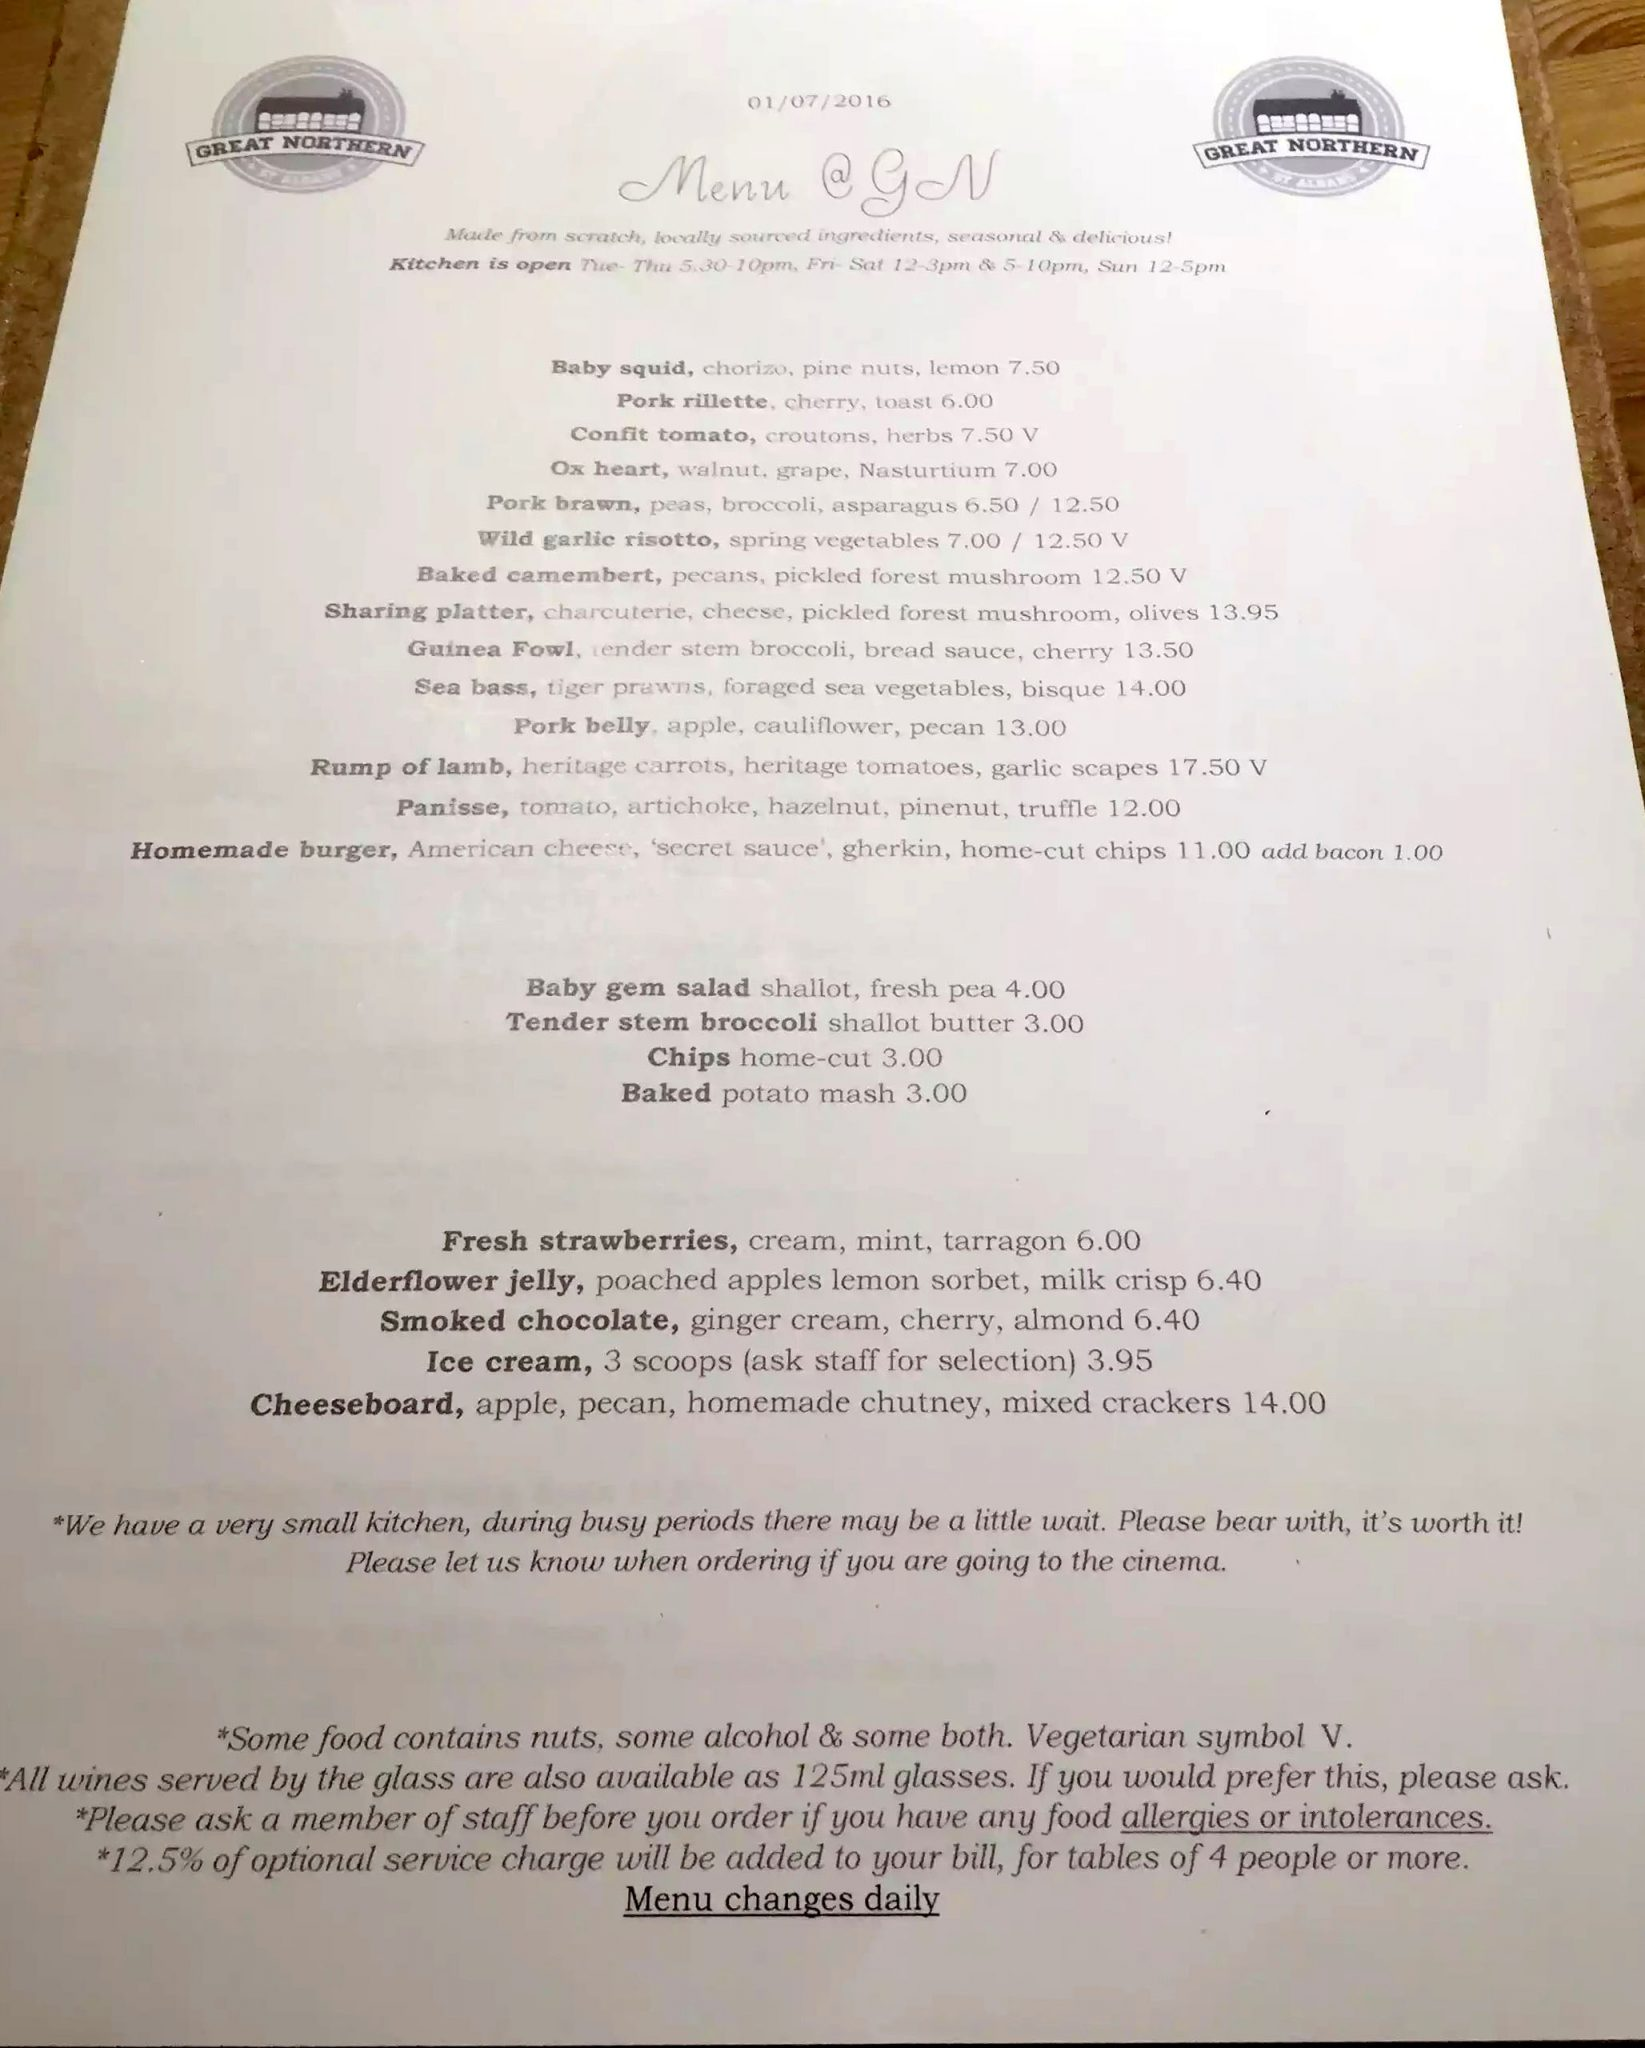 Great Northern Pub St Albans Wine Tasting Dinner Menu